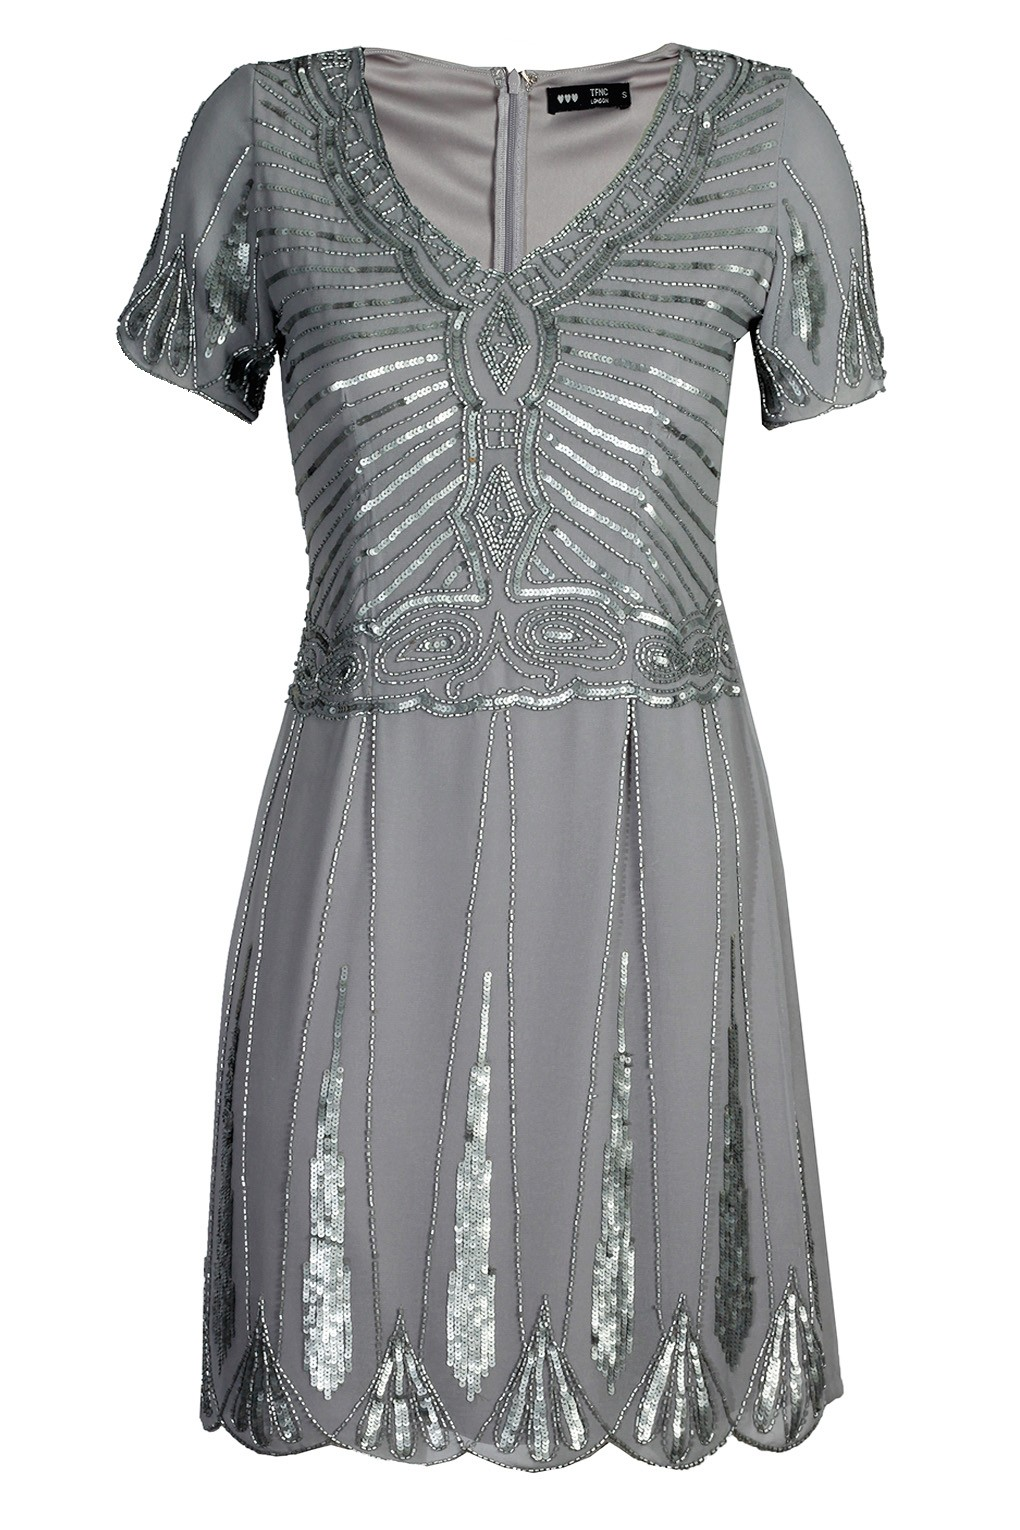 Lace Amp Beads Stacey Grey Embellished Dress Party Dresses